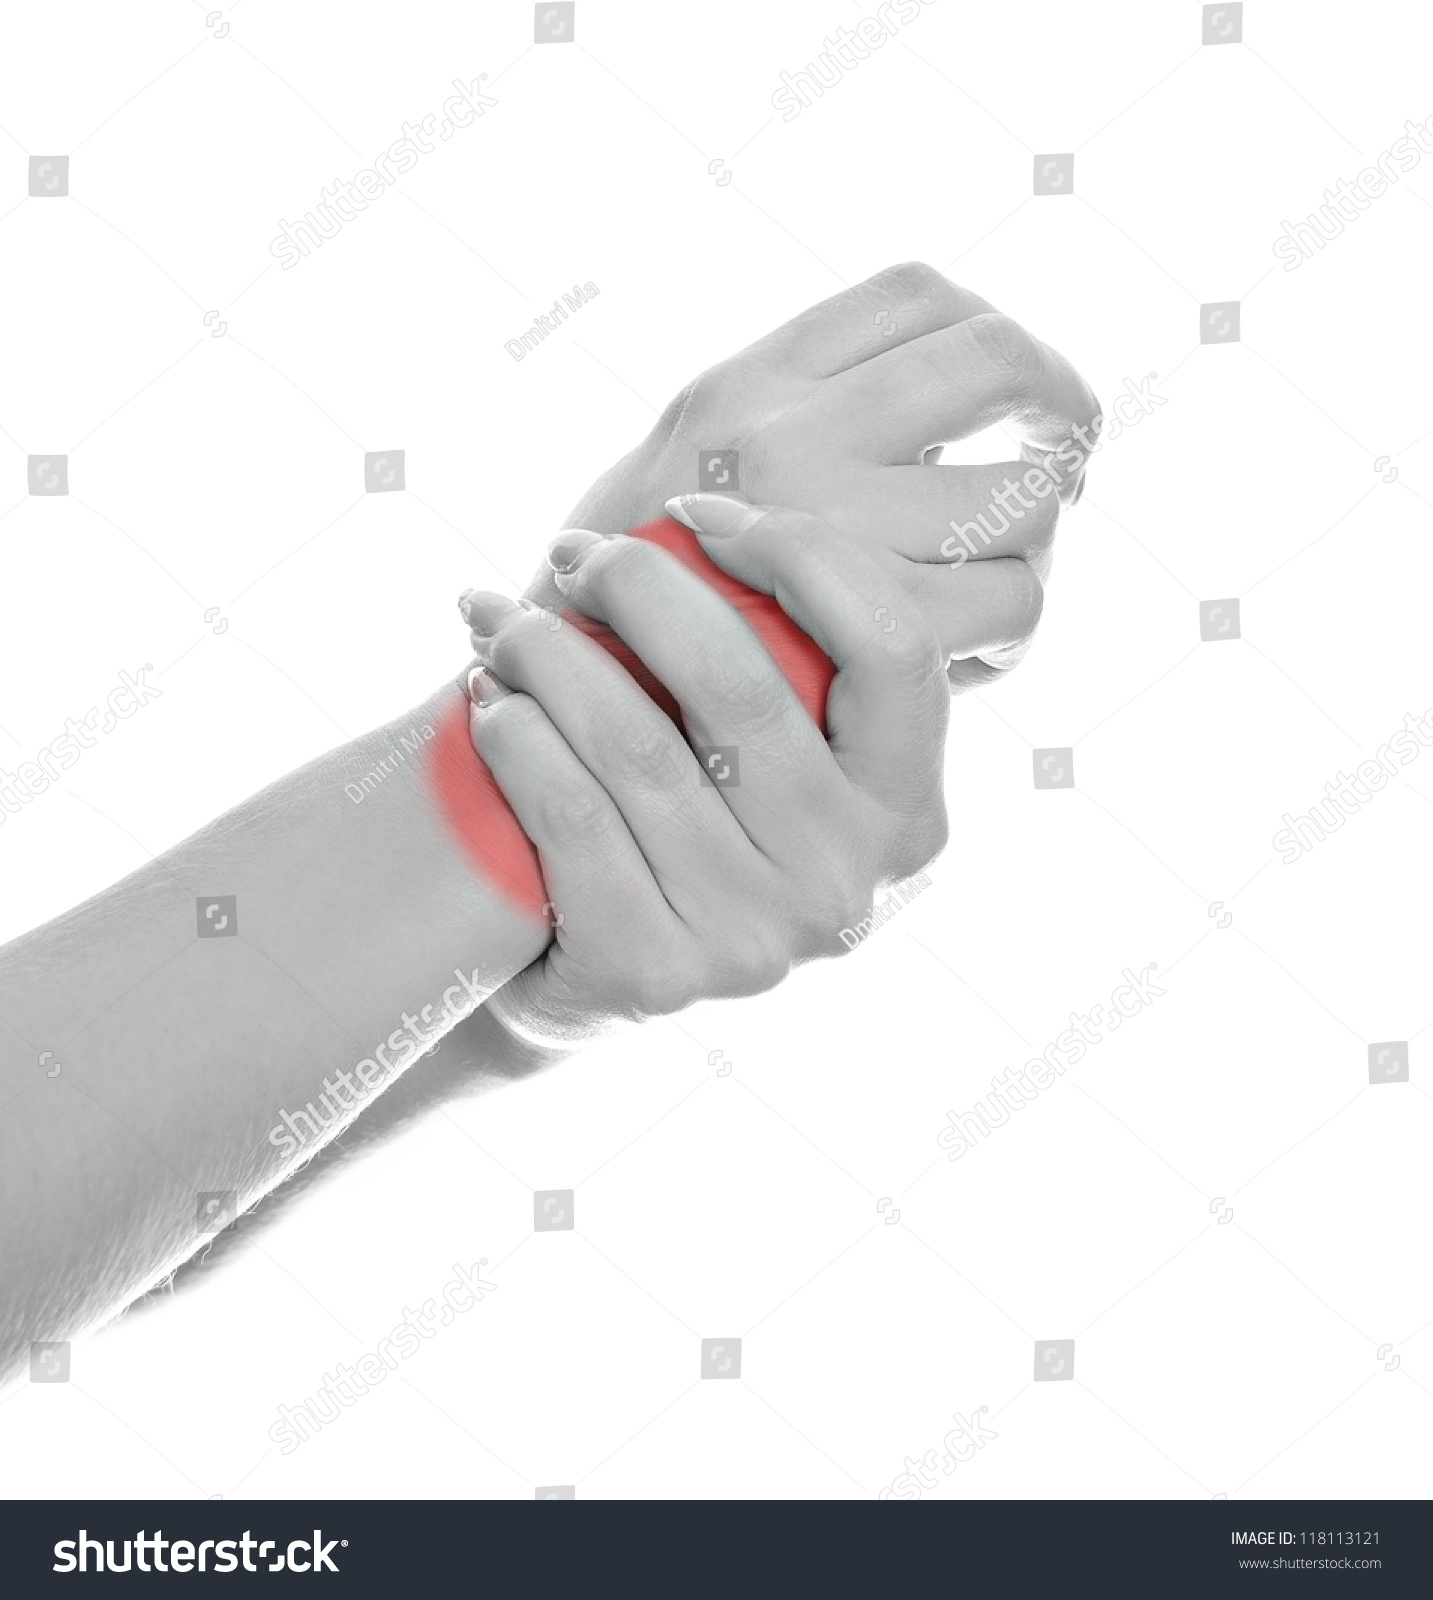 Pain when clenching fist agree